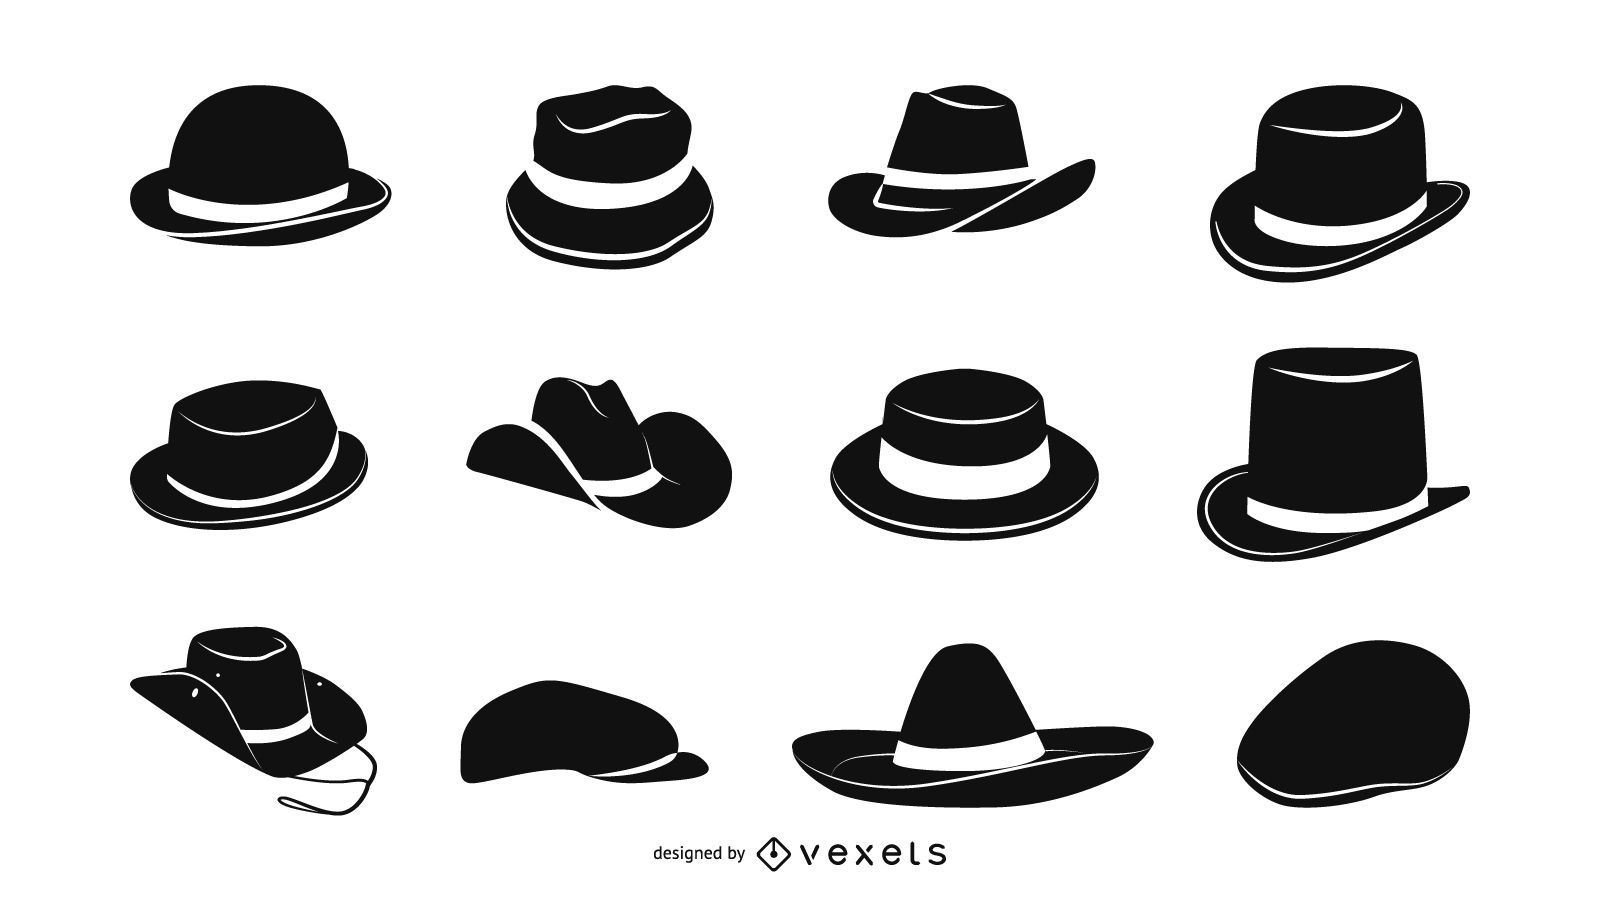 1429b74d0a1ef7 Men hat icon set. Download Large Image 1600x901px